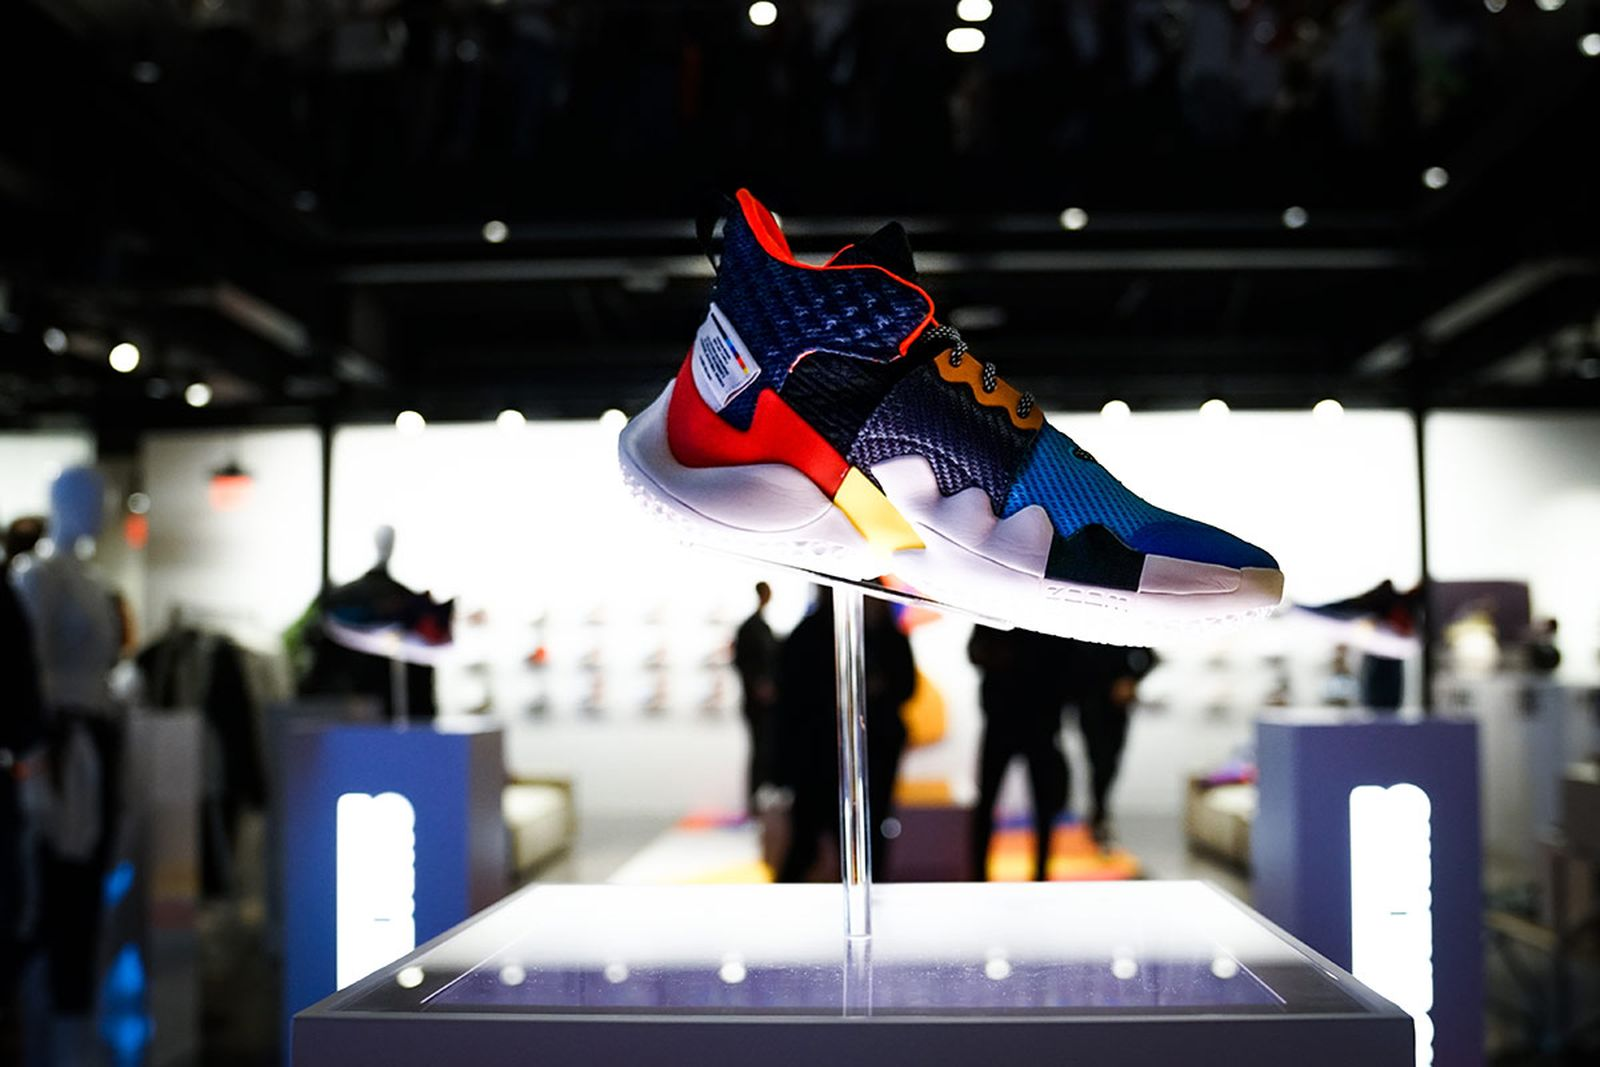 jordan brand why not zer02 release date price event Jordan Why Not Zer0.2 Nike Russell Westbrook